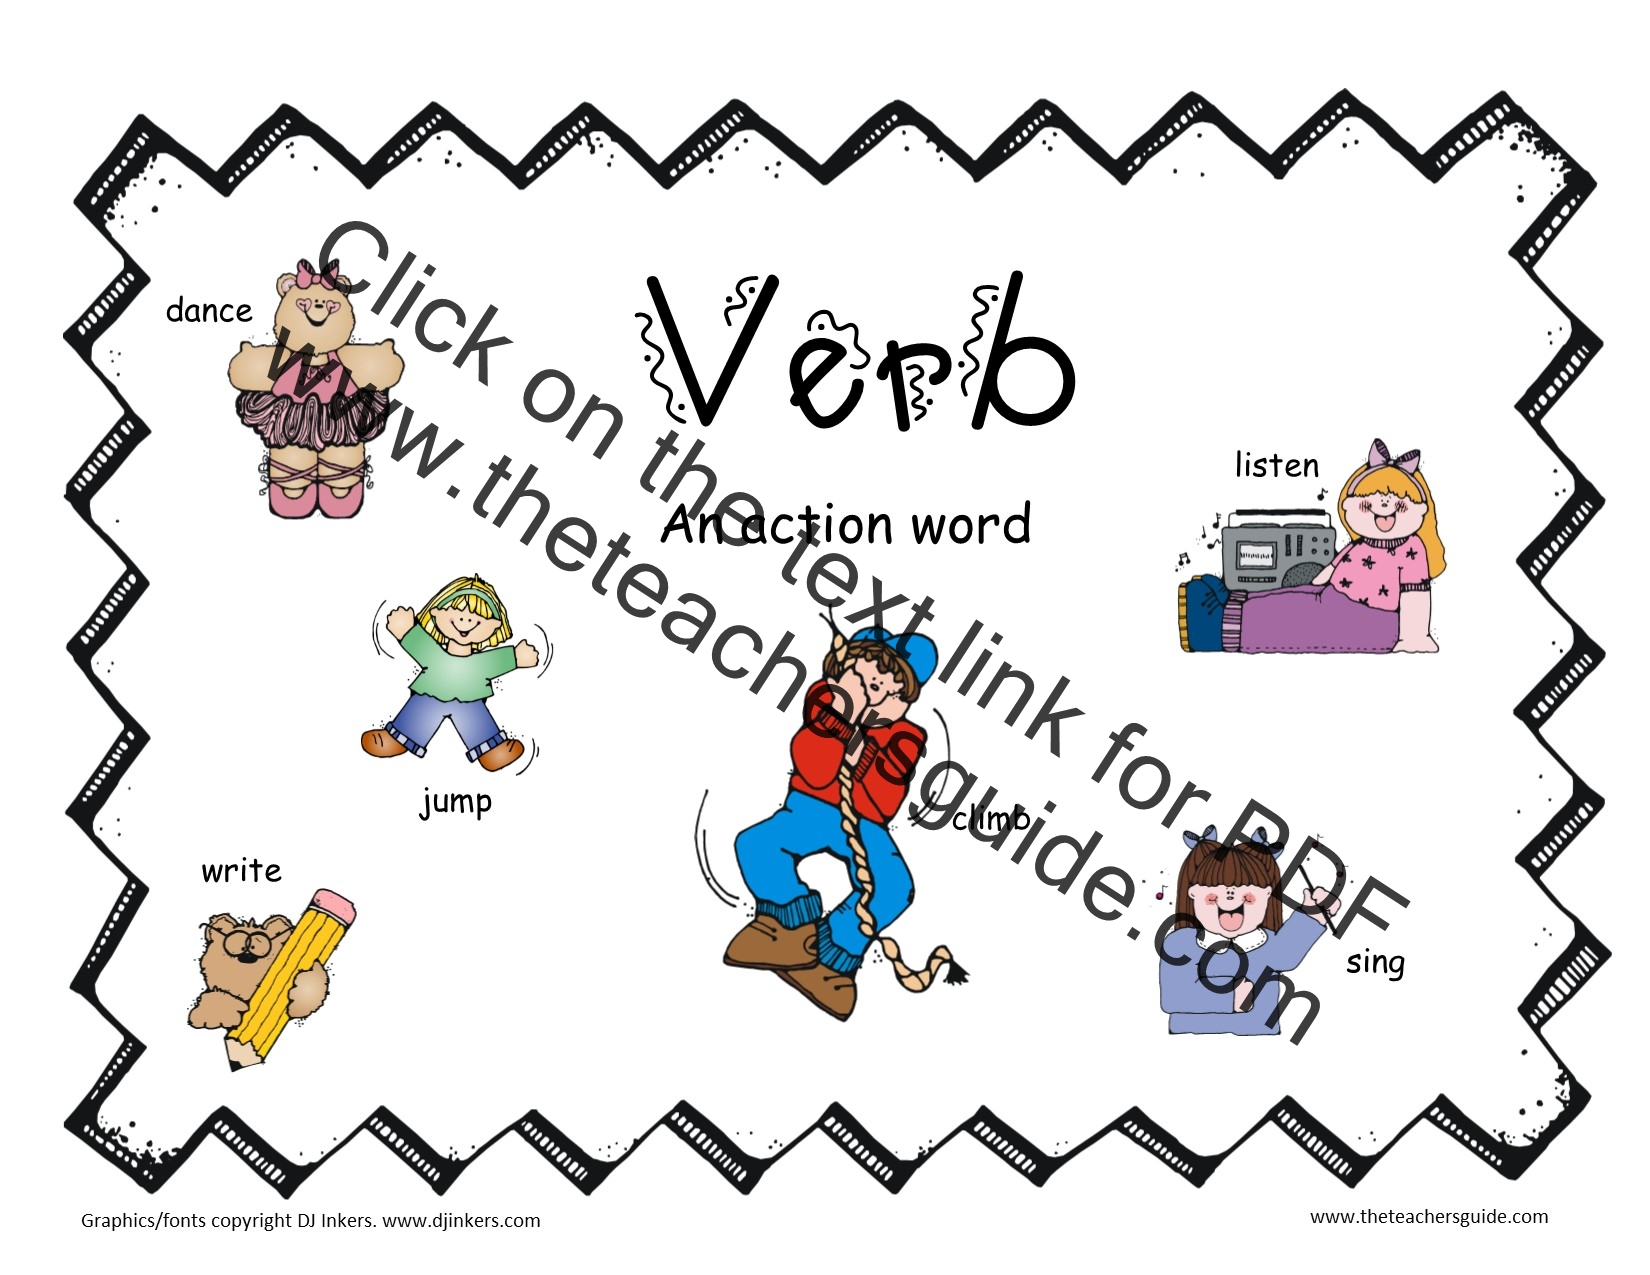 Original furthermore Original likewise Vocabwords in addition Spellingsearchttg in addition Original. on mcgraw hill math worksheets